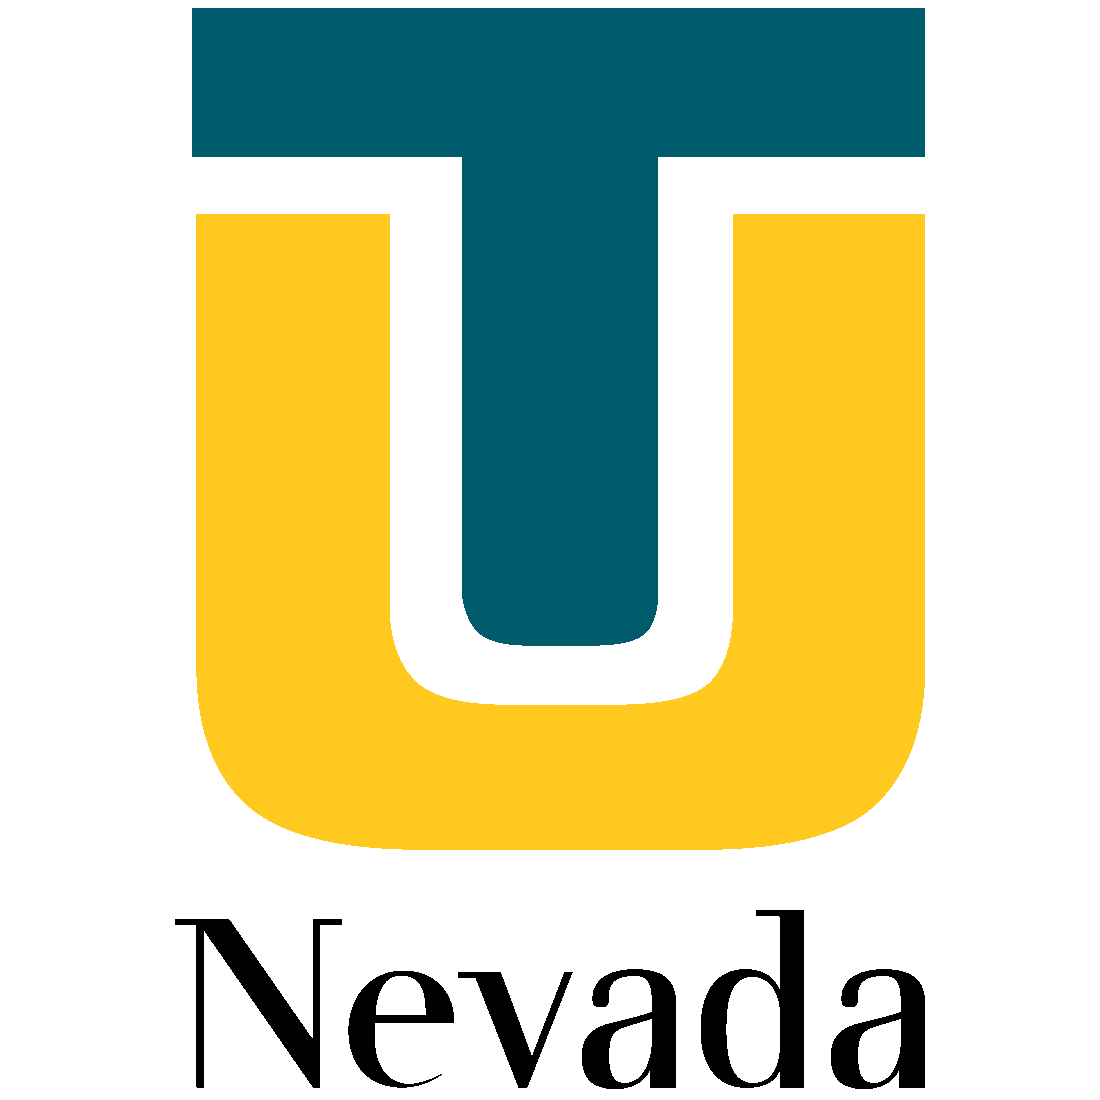 Touro University Nevada Wikipedia